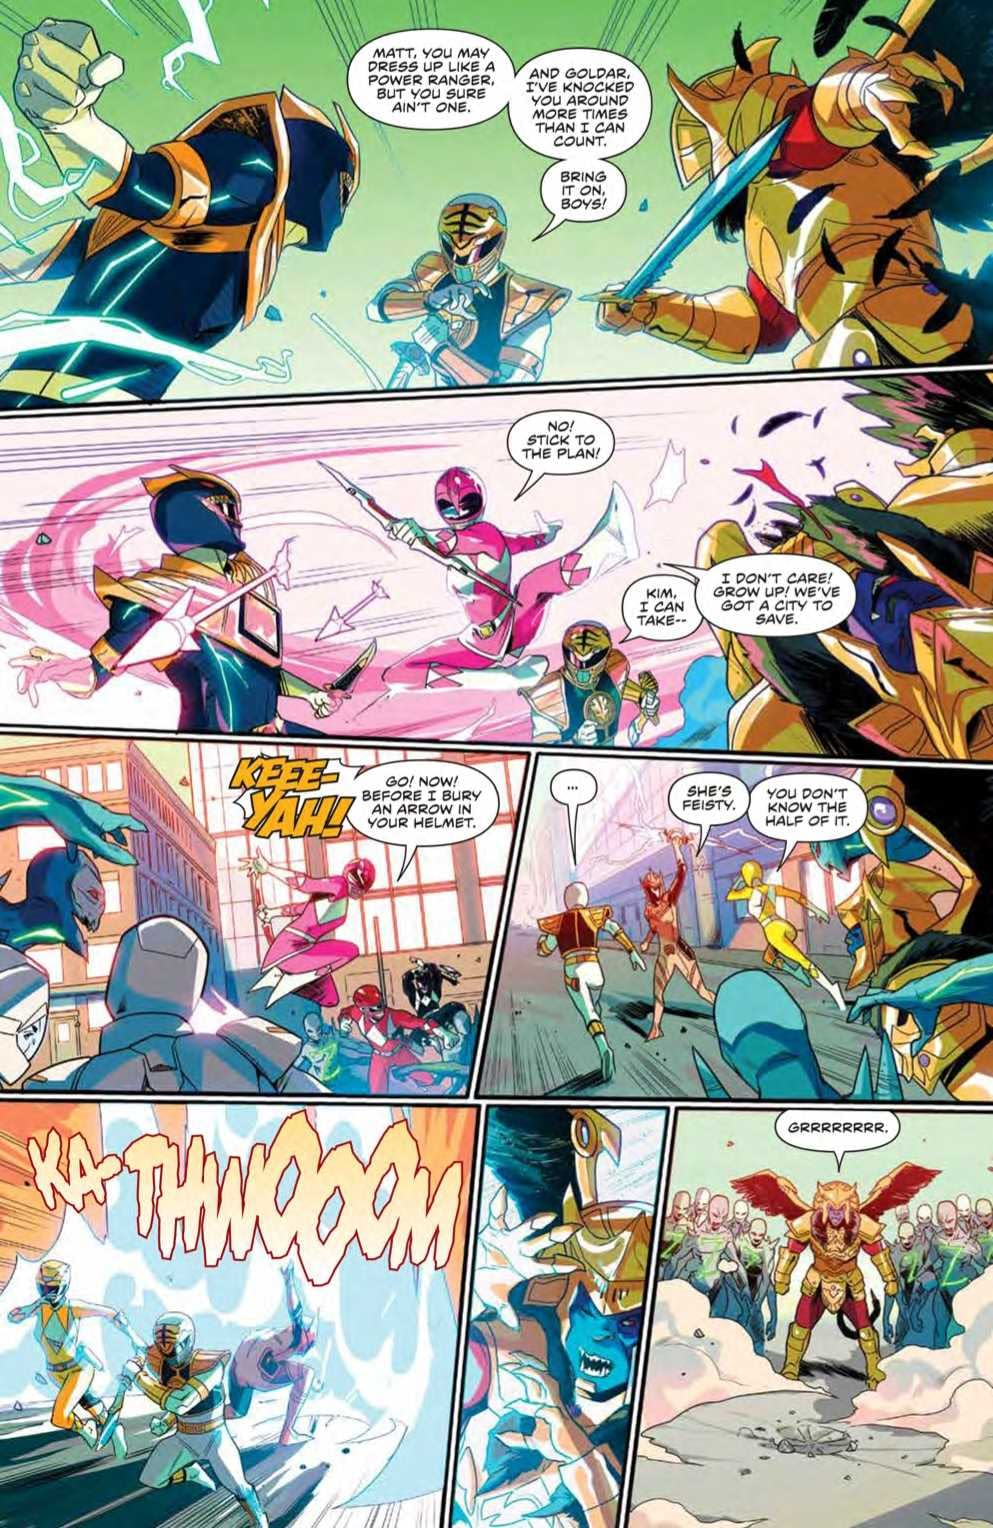 Interior preview page from MIGHTY MORPHIN #7 CVR A LEE